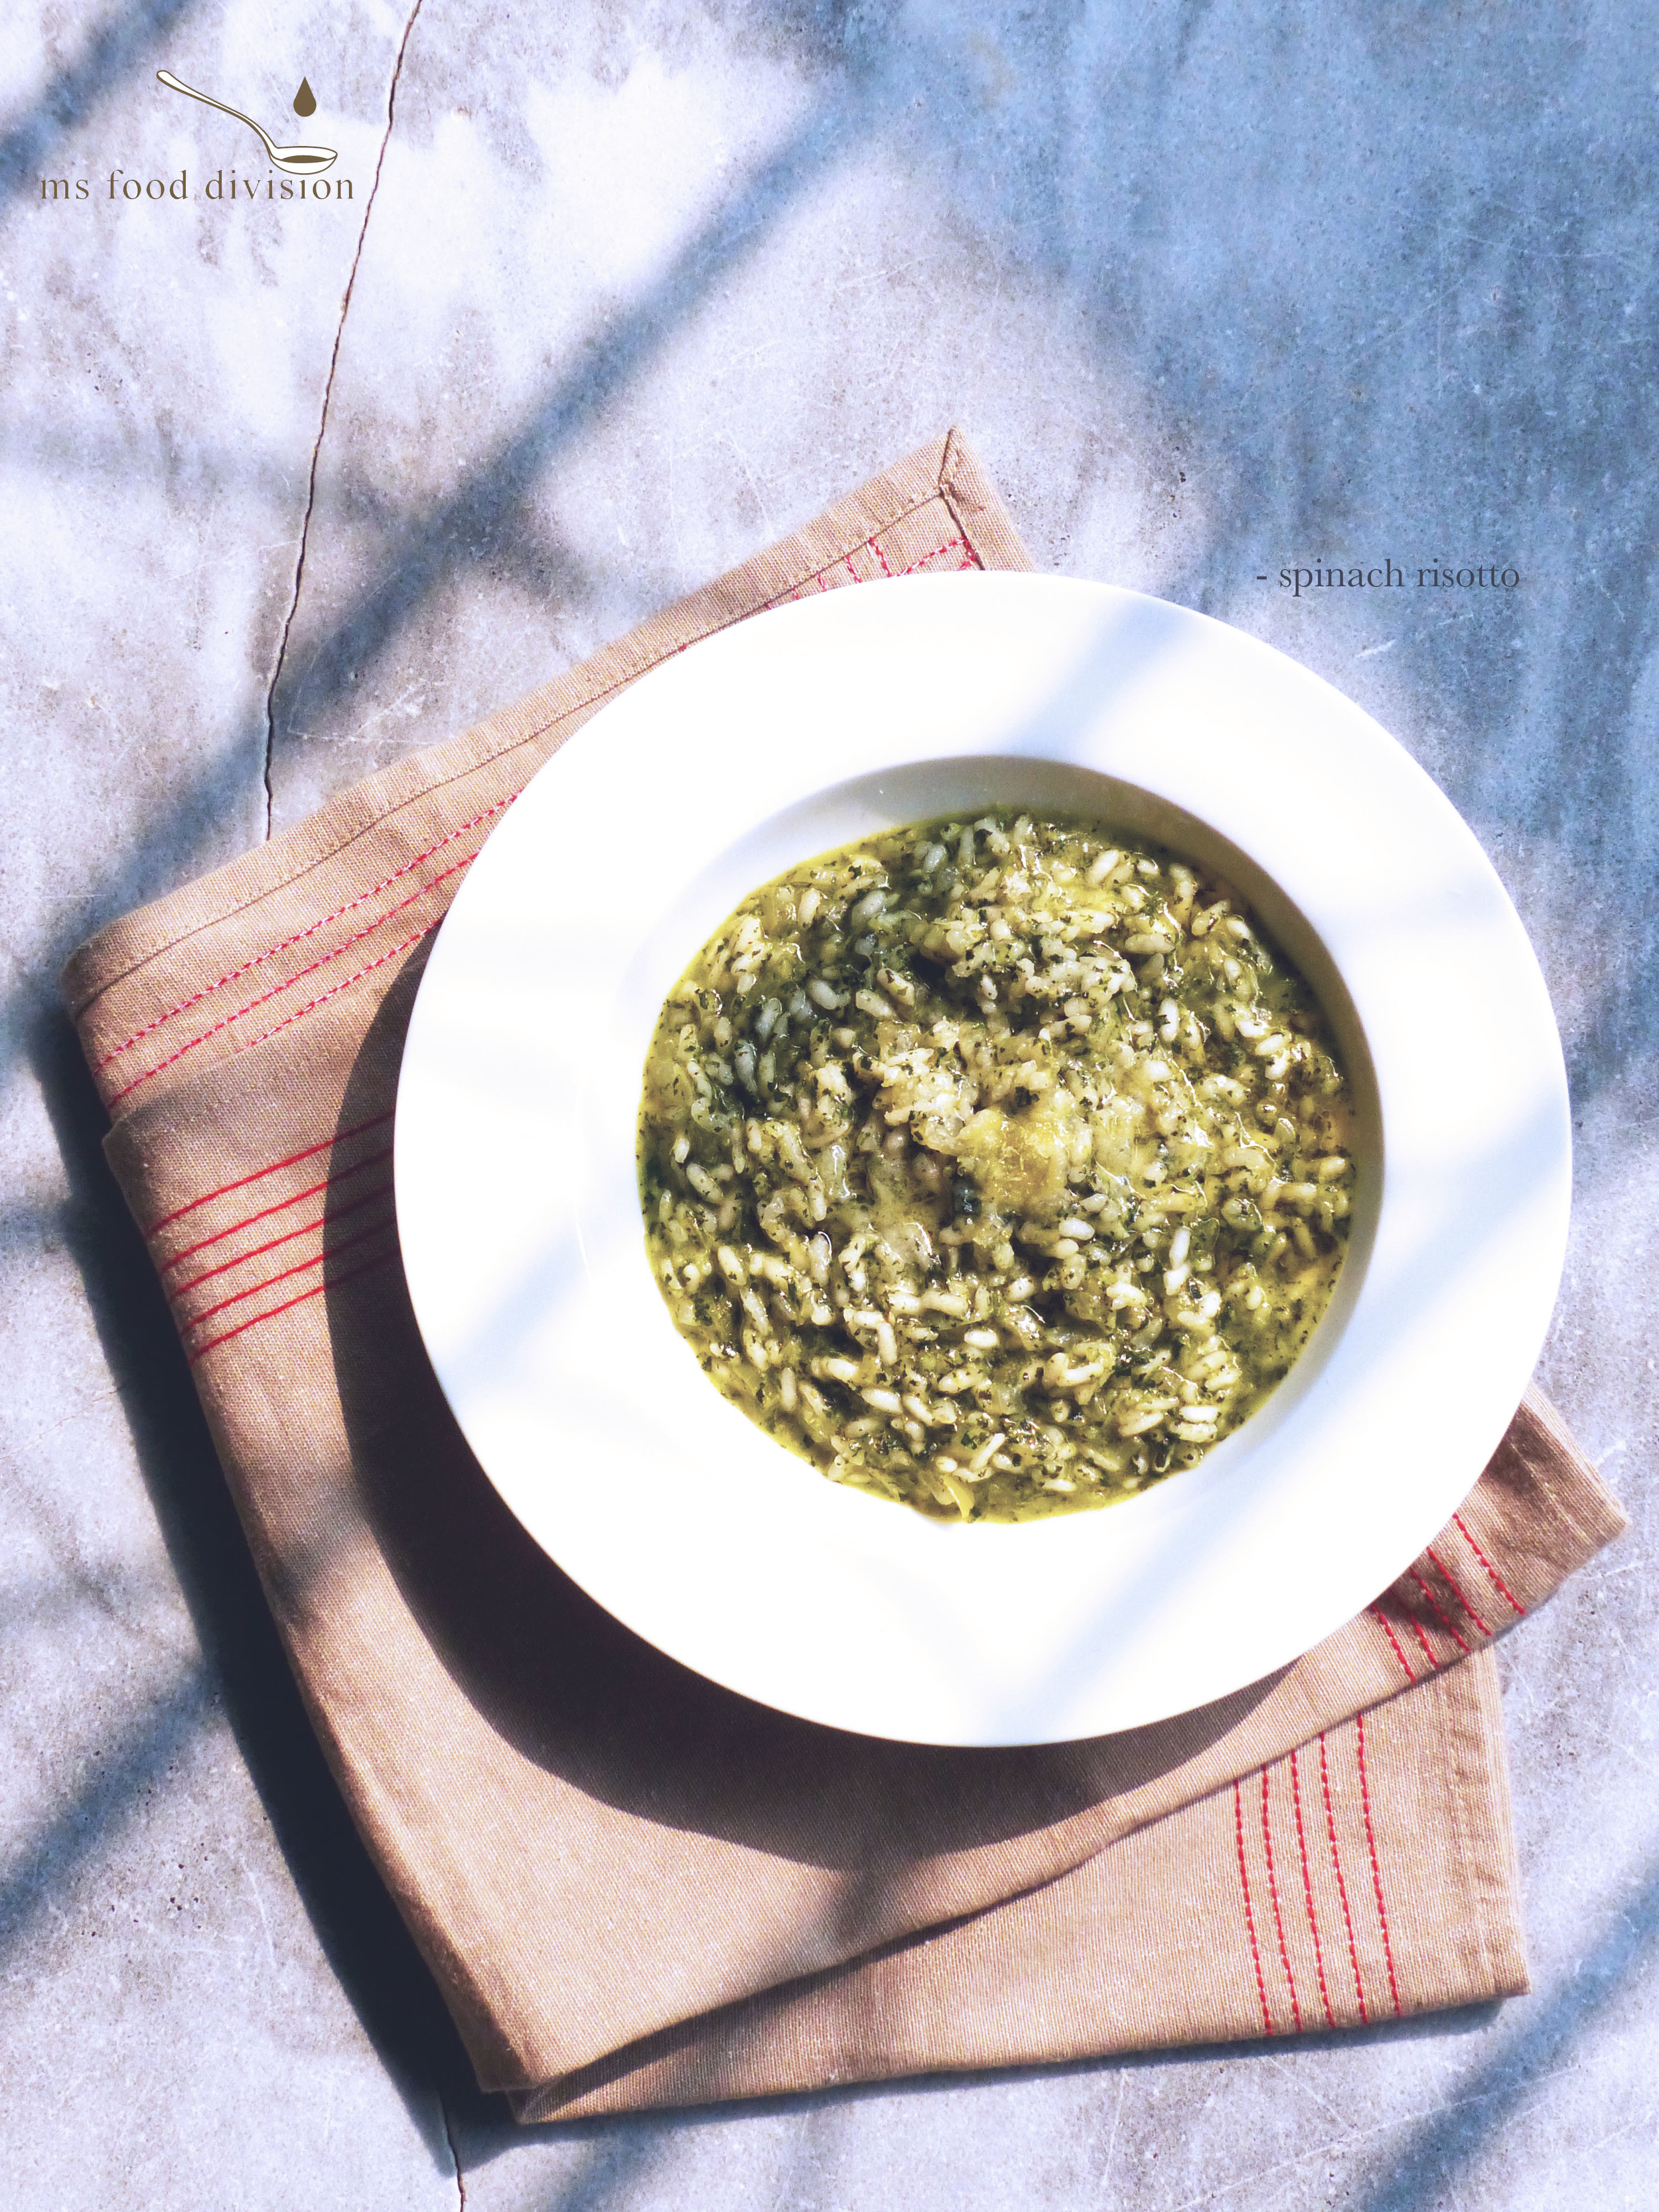 spinach risotto2.jpg